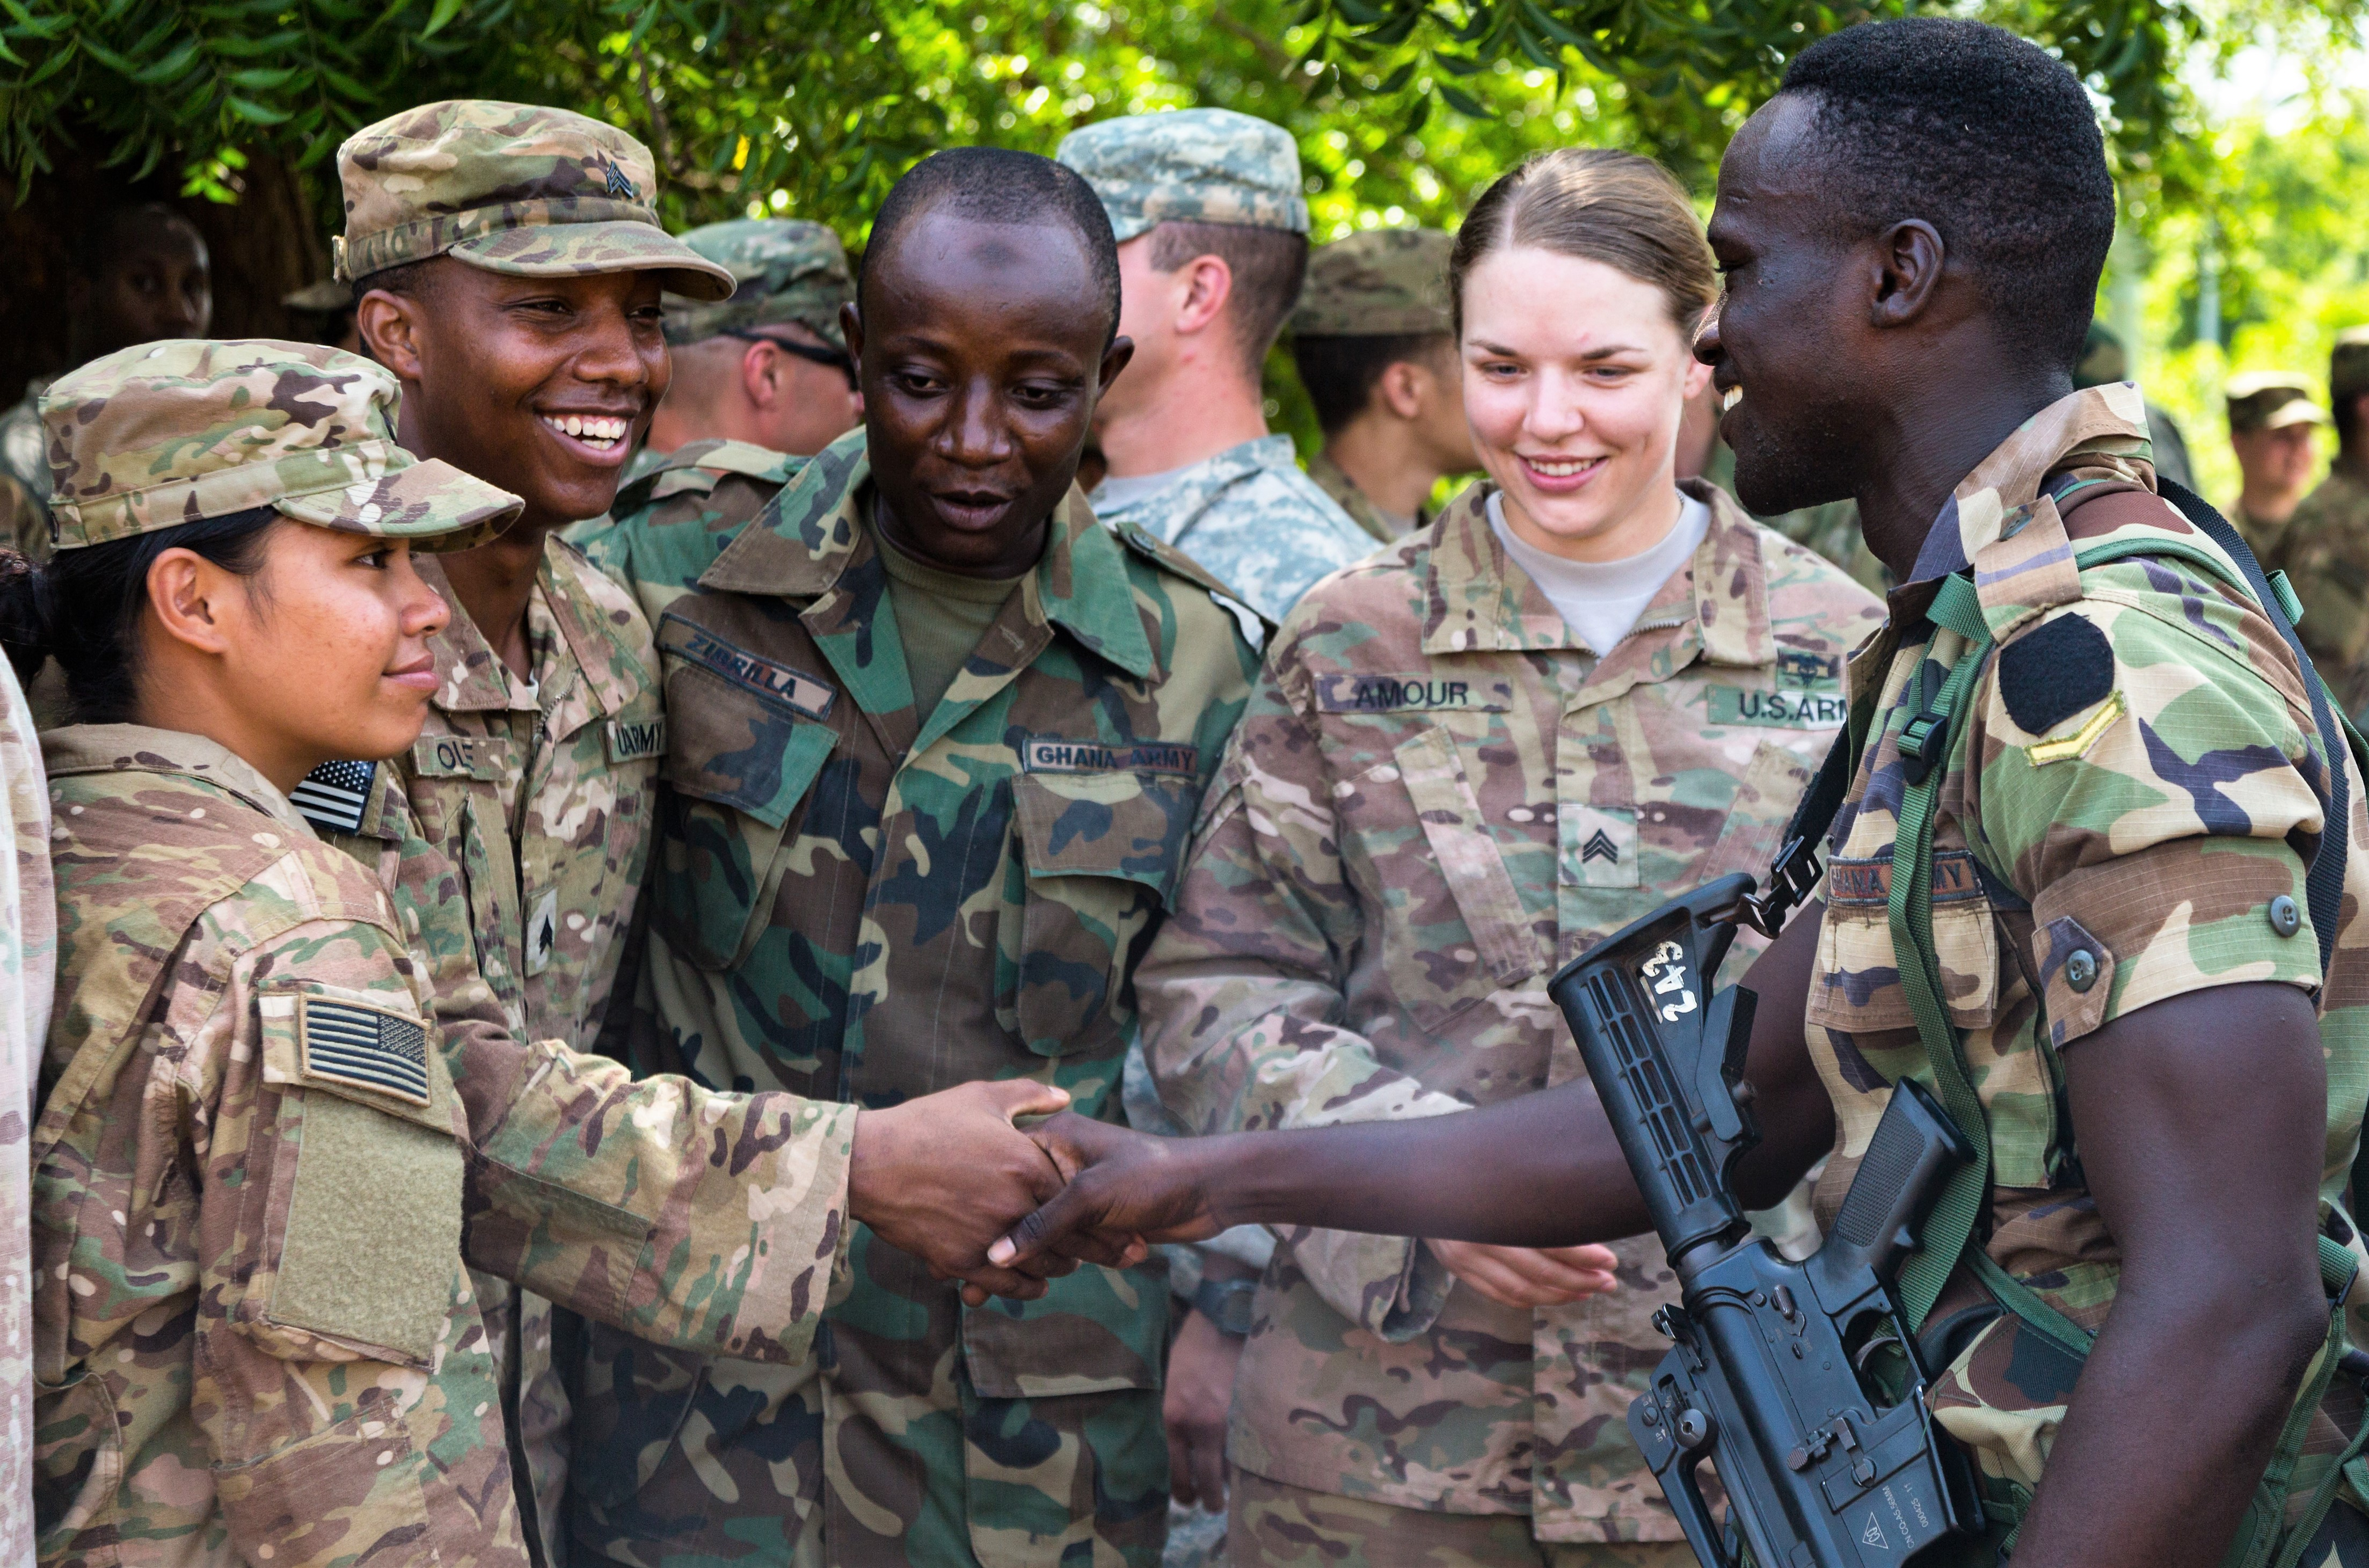 http://www.africom.mil/Img/28941/Super/united-accord-2017-concludes